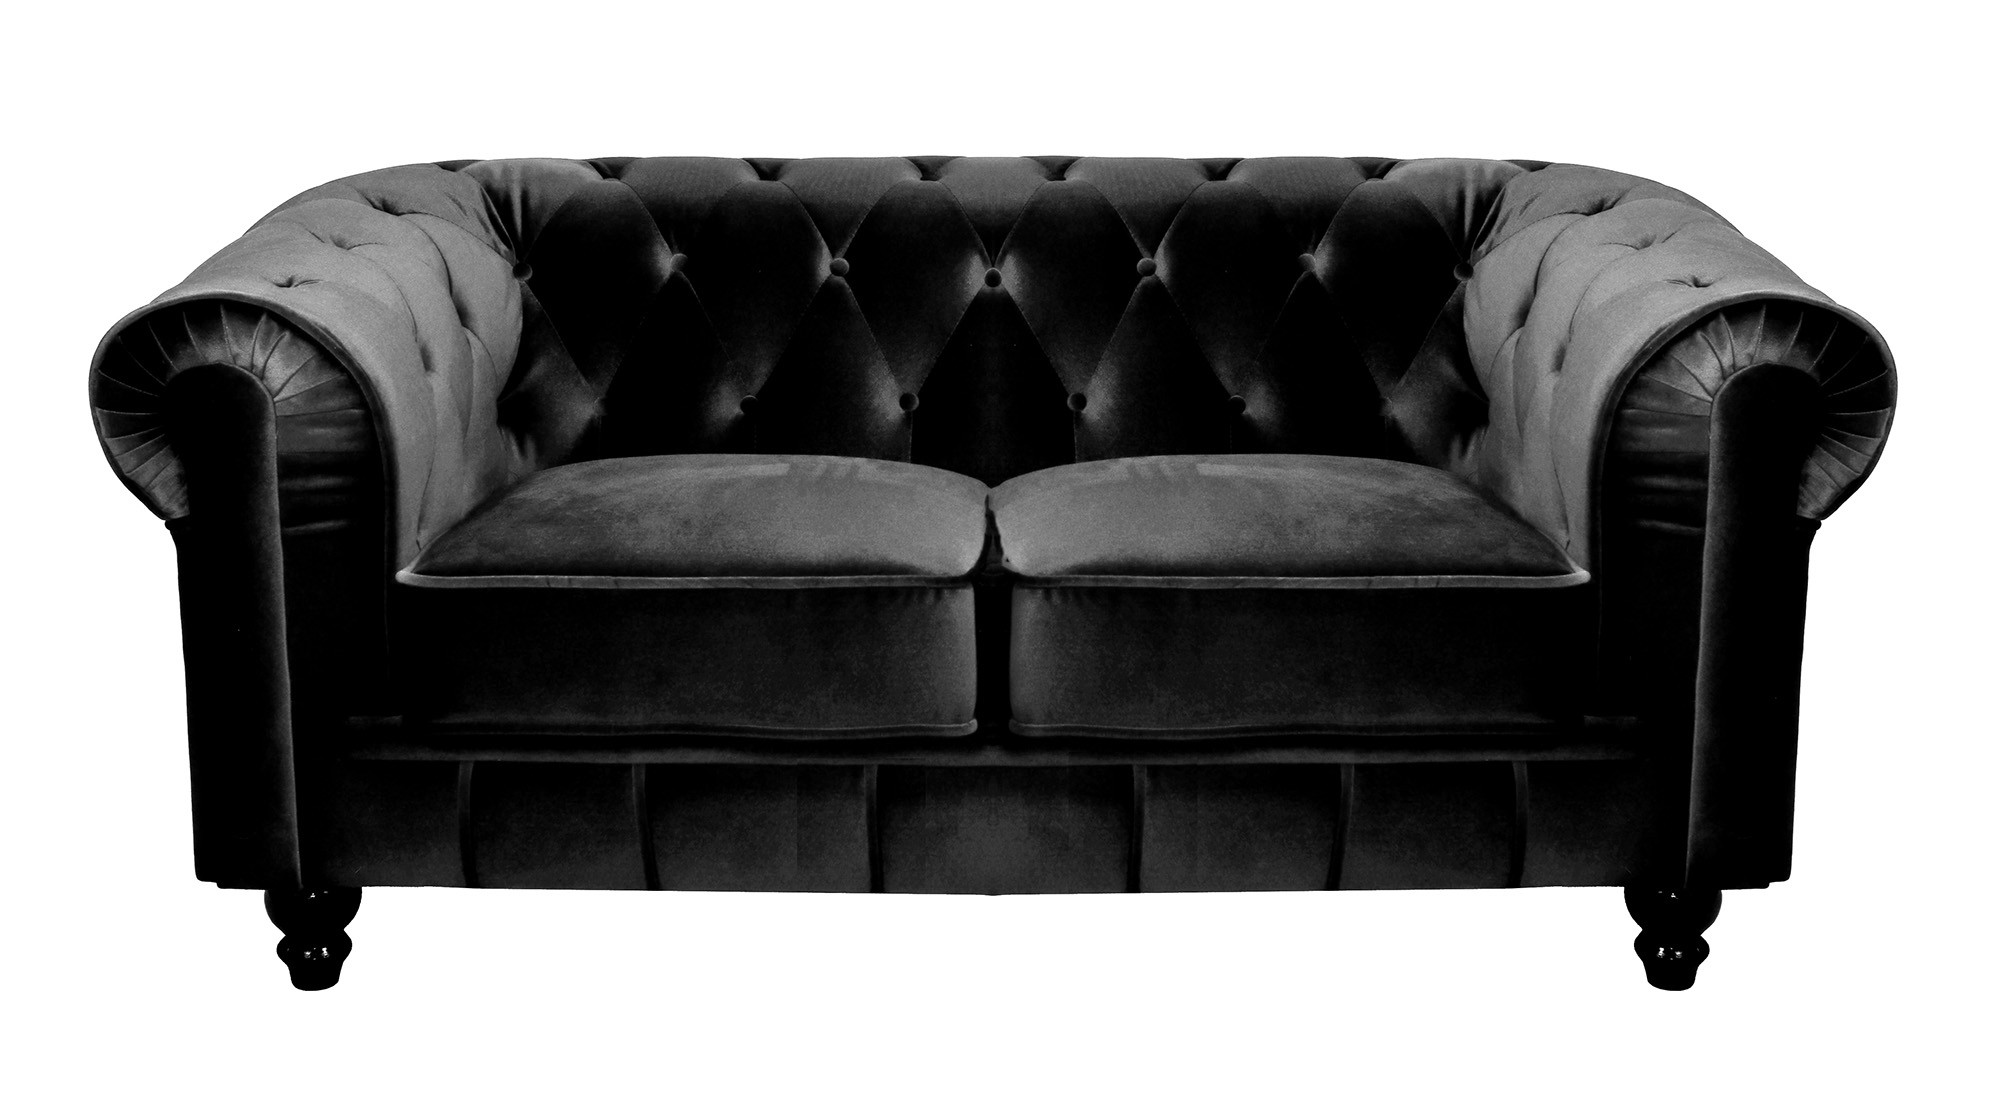 Canape chesterfield velours maison design for Canape velours bordeaux